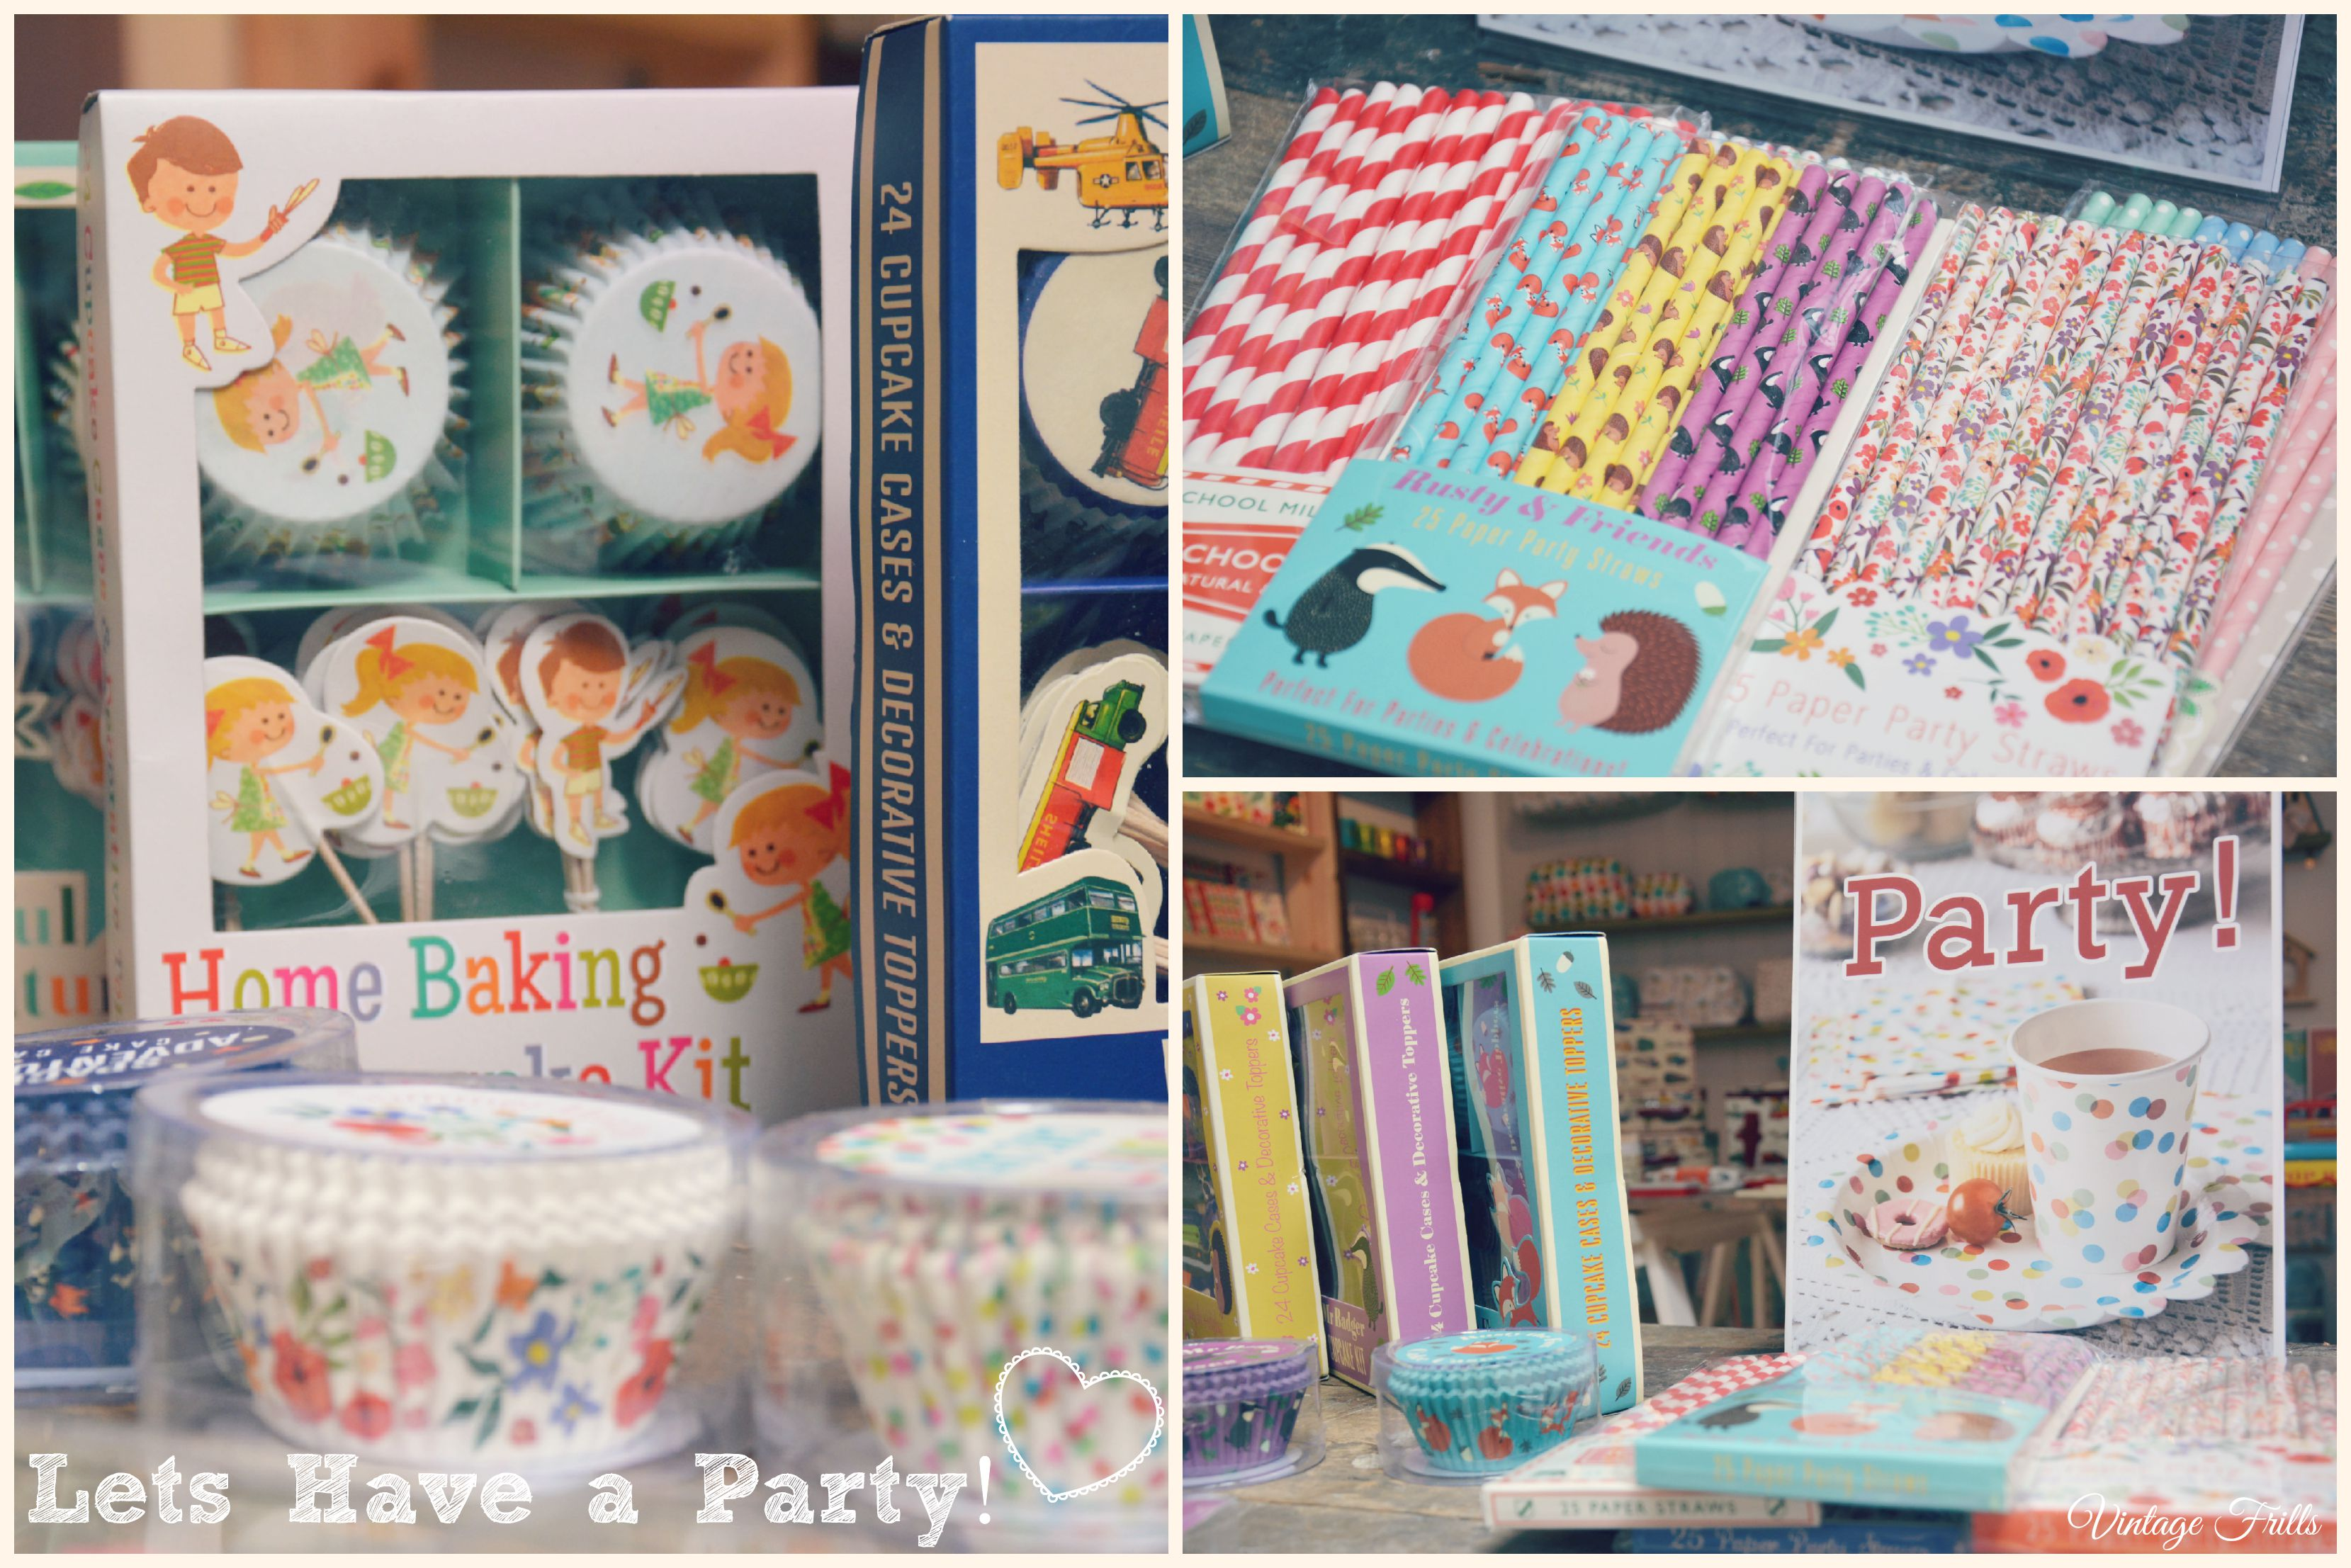 Party, Paper Straws and Cake Cases Dot Com Gift Shop  Vintage Frills